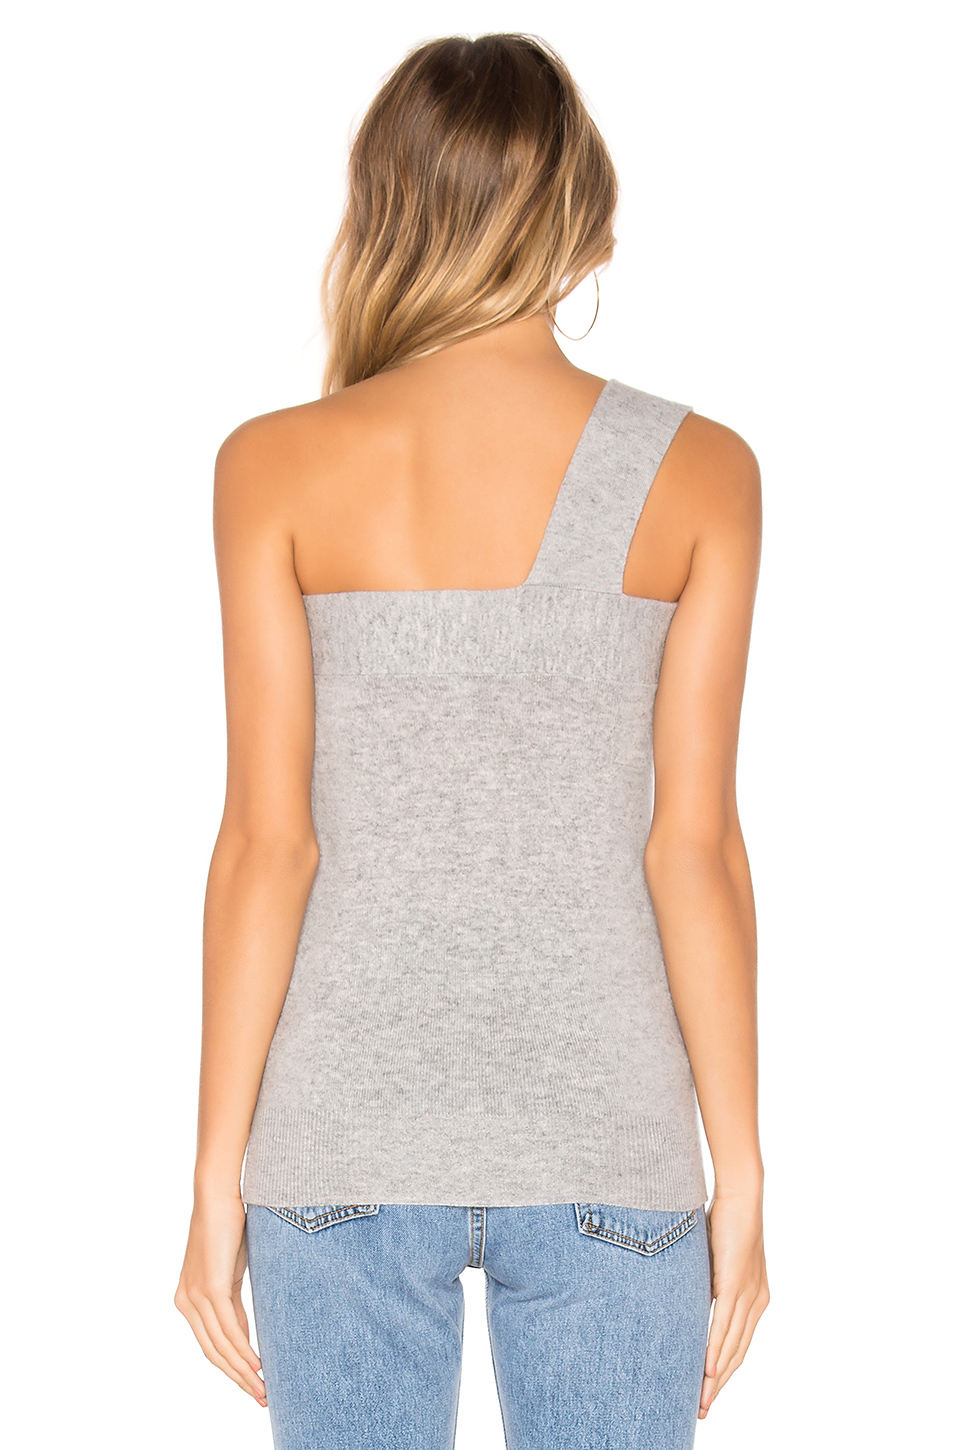 Autumn Cashmere Draped One Shoulder Top